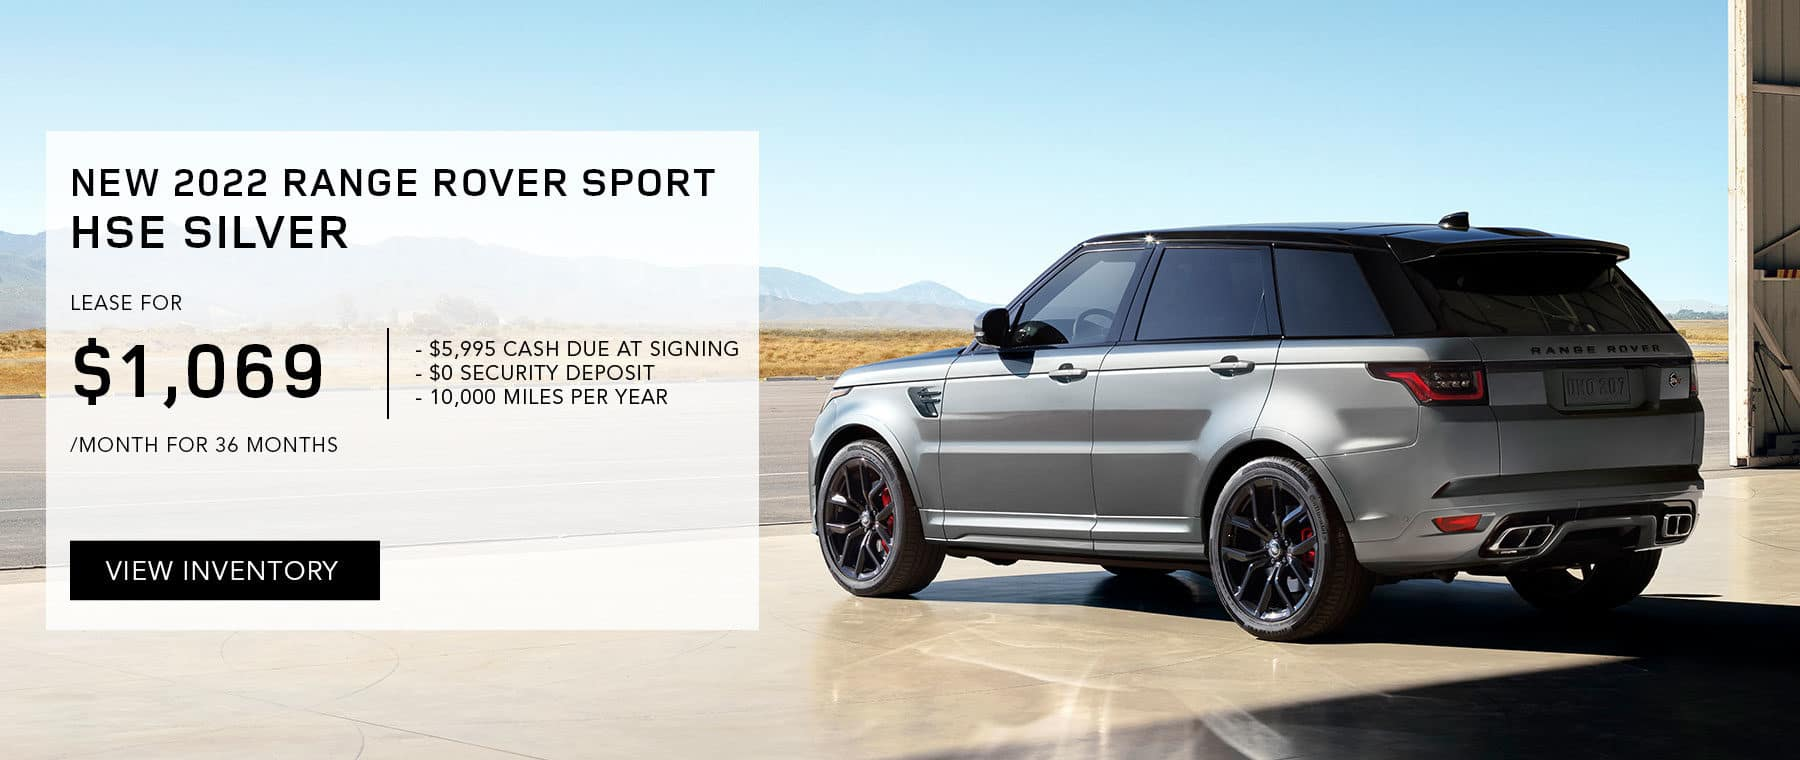 NEW 2022 RANGE ROVER SPORT HSE SILVER. $1,069 PER MONTH. 36 MONTH LEASE TERM. $5,995 CASH DUE AT SIGNING. $0 SECURITY DEPOSIT. 10,000 MILES PER YEAR. EXCLUDES RETAILER FEES, TAXES, TITLE AND REGISTRATION FEES, PROCESSING FEE AND ANY EMISSION TESTING CHARGE. OFFER ENDS 9/30/2021. RANGE ROVER SPORT PARKED IN A GARAGE ON A SUNNY DAY.